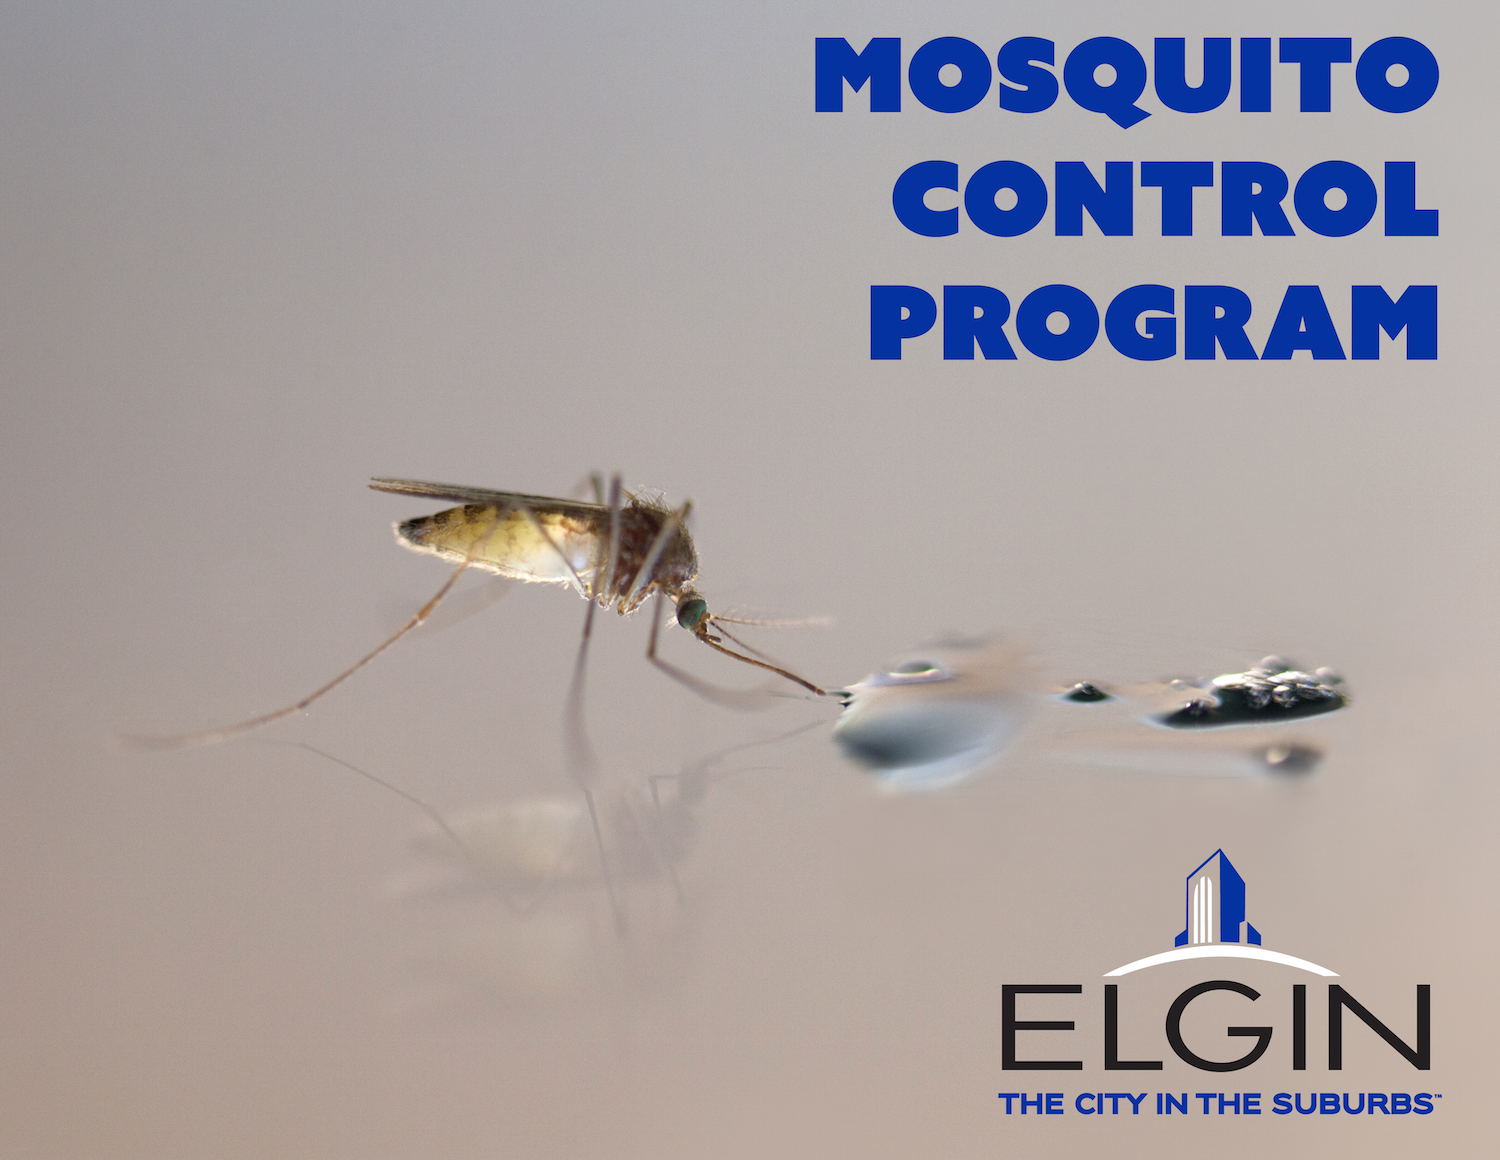 Mosquito Control Program